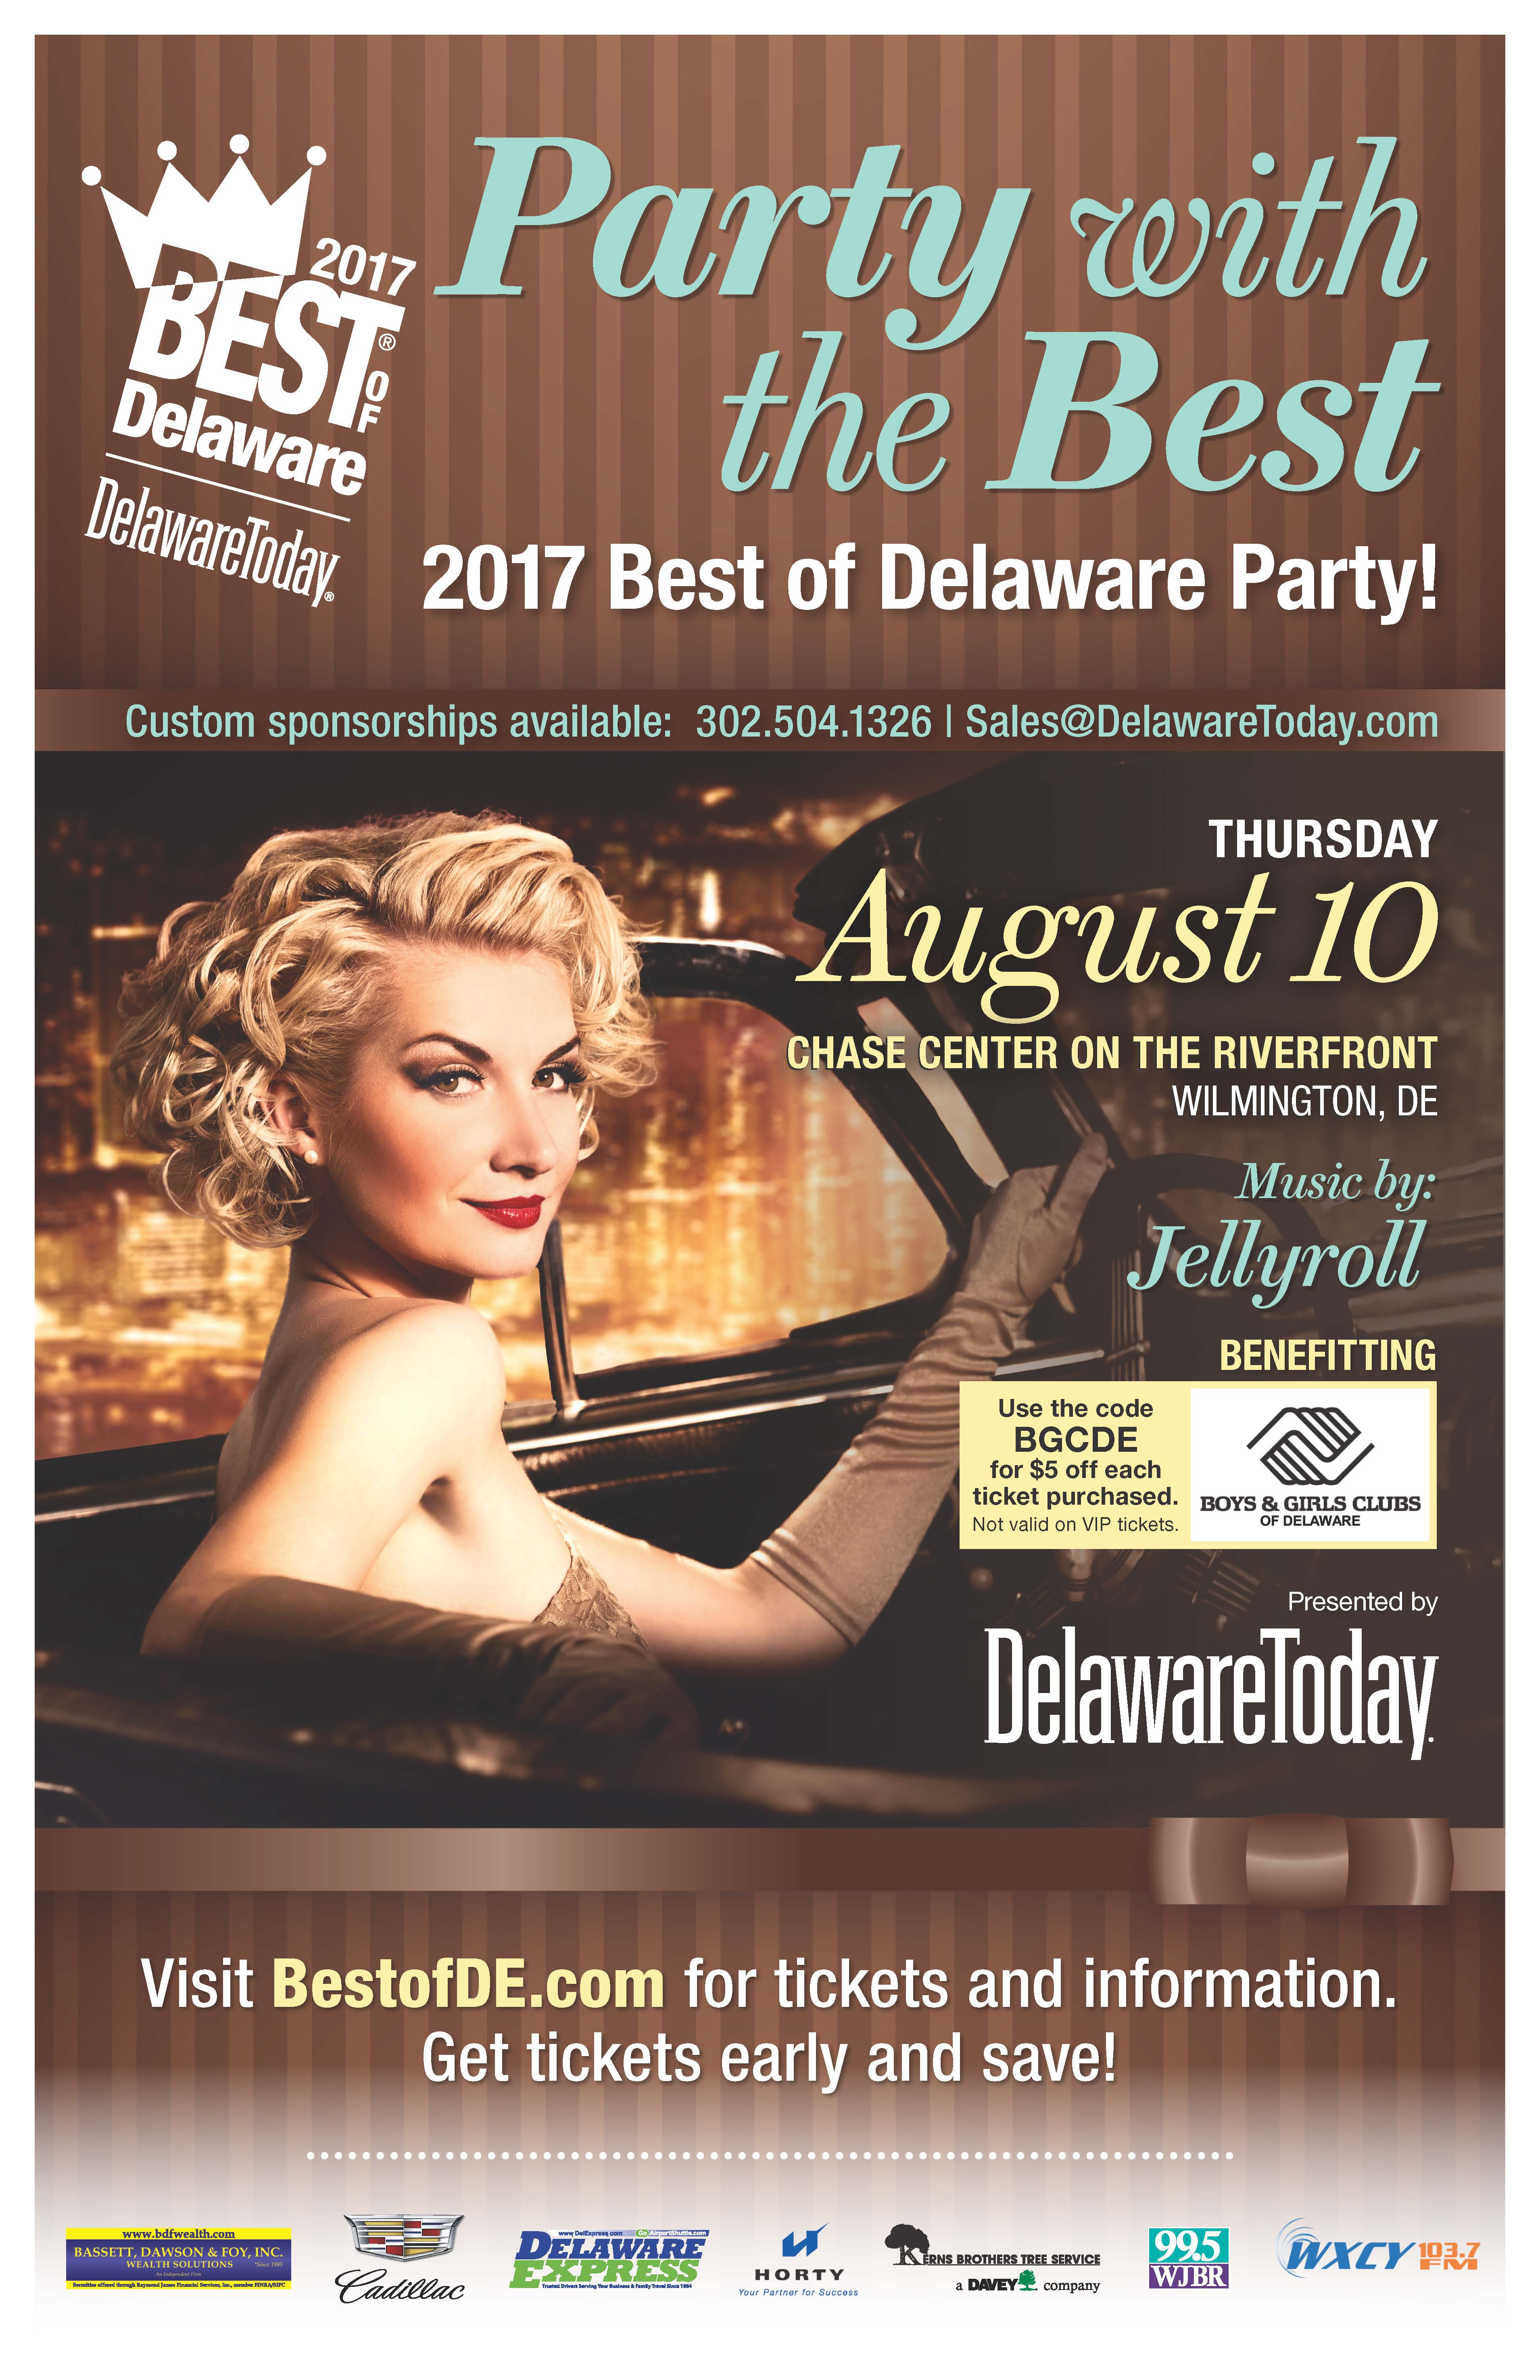 2017 Best of Delaware Party Benefiting Boys & Girls Clubs of Delaware